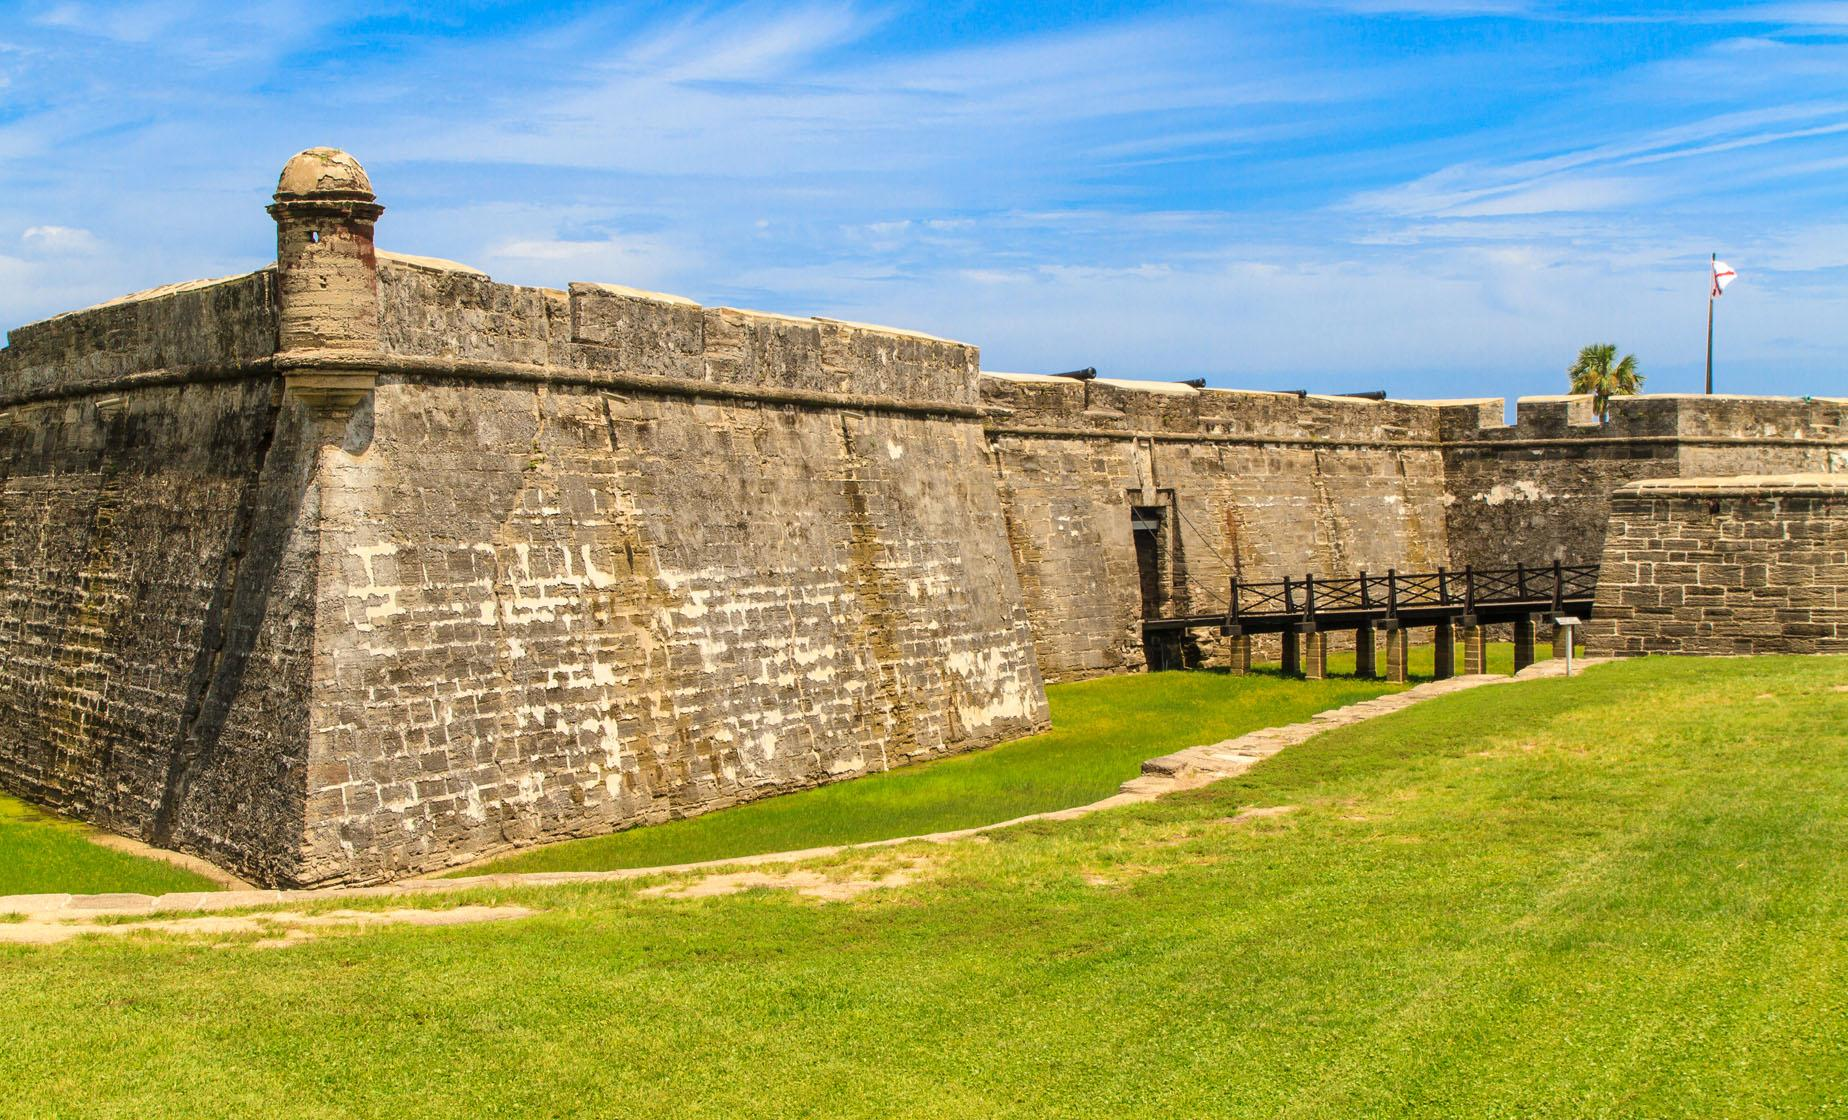 Day Trip to St. Augustine from Orlando Florida (Castillo de San Marcos and Fort Matanzas)